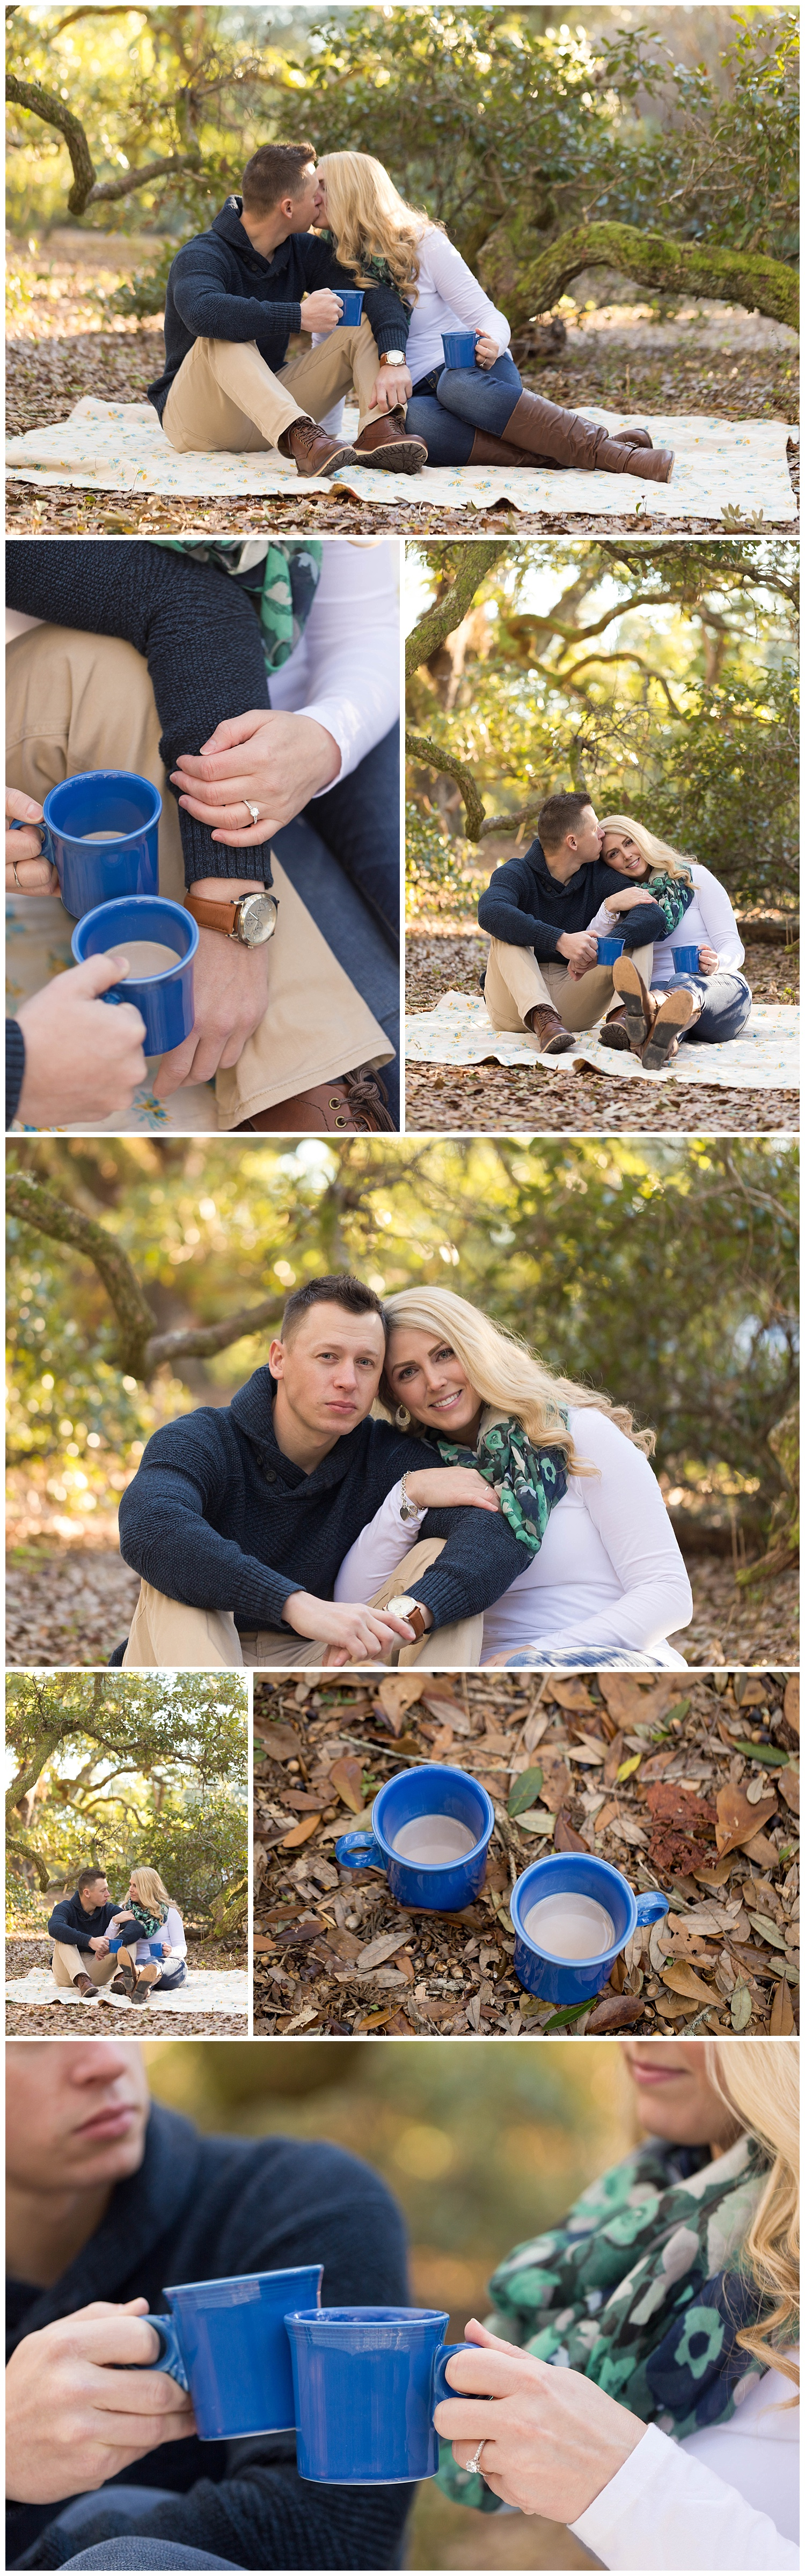 Ocean Springs engagement photos with mugs of hot cocoa live oak trees, couple kissing